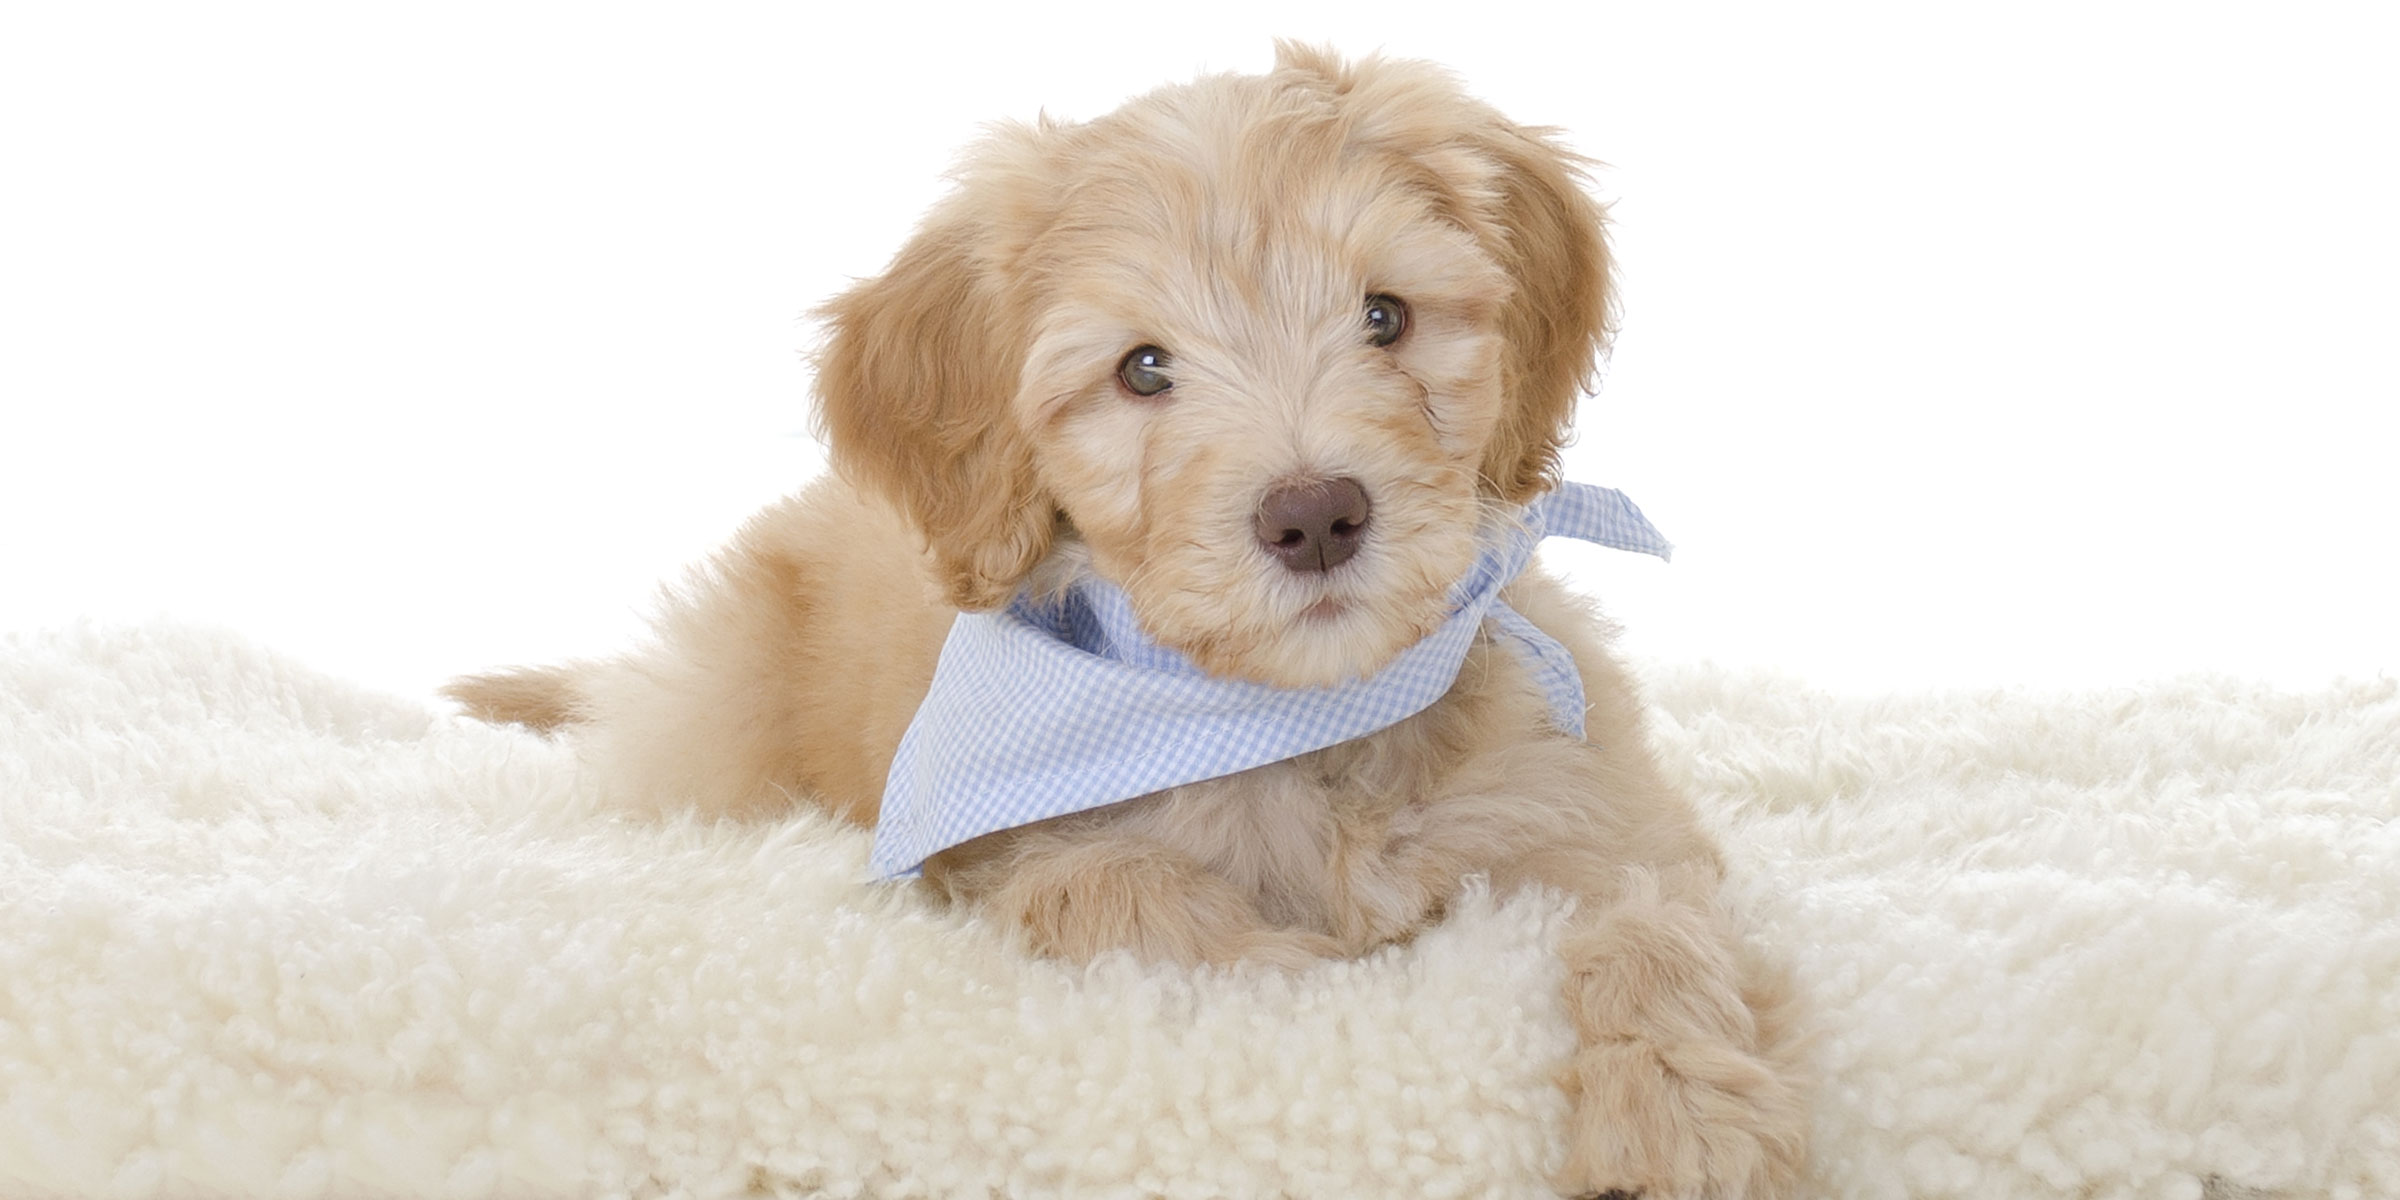 What's the Difference Between an Australian Labradoodle and a Labradoodle?